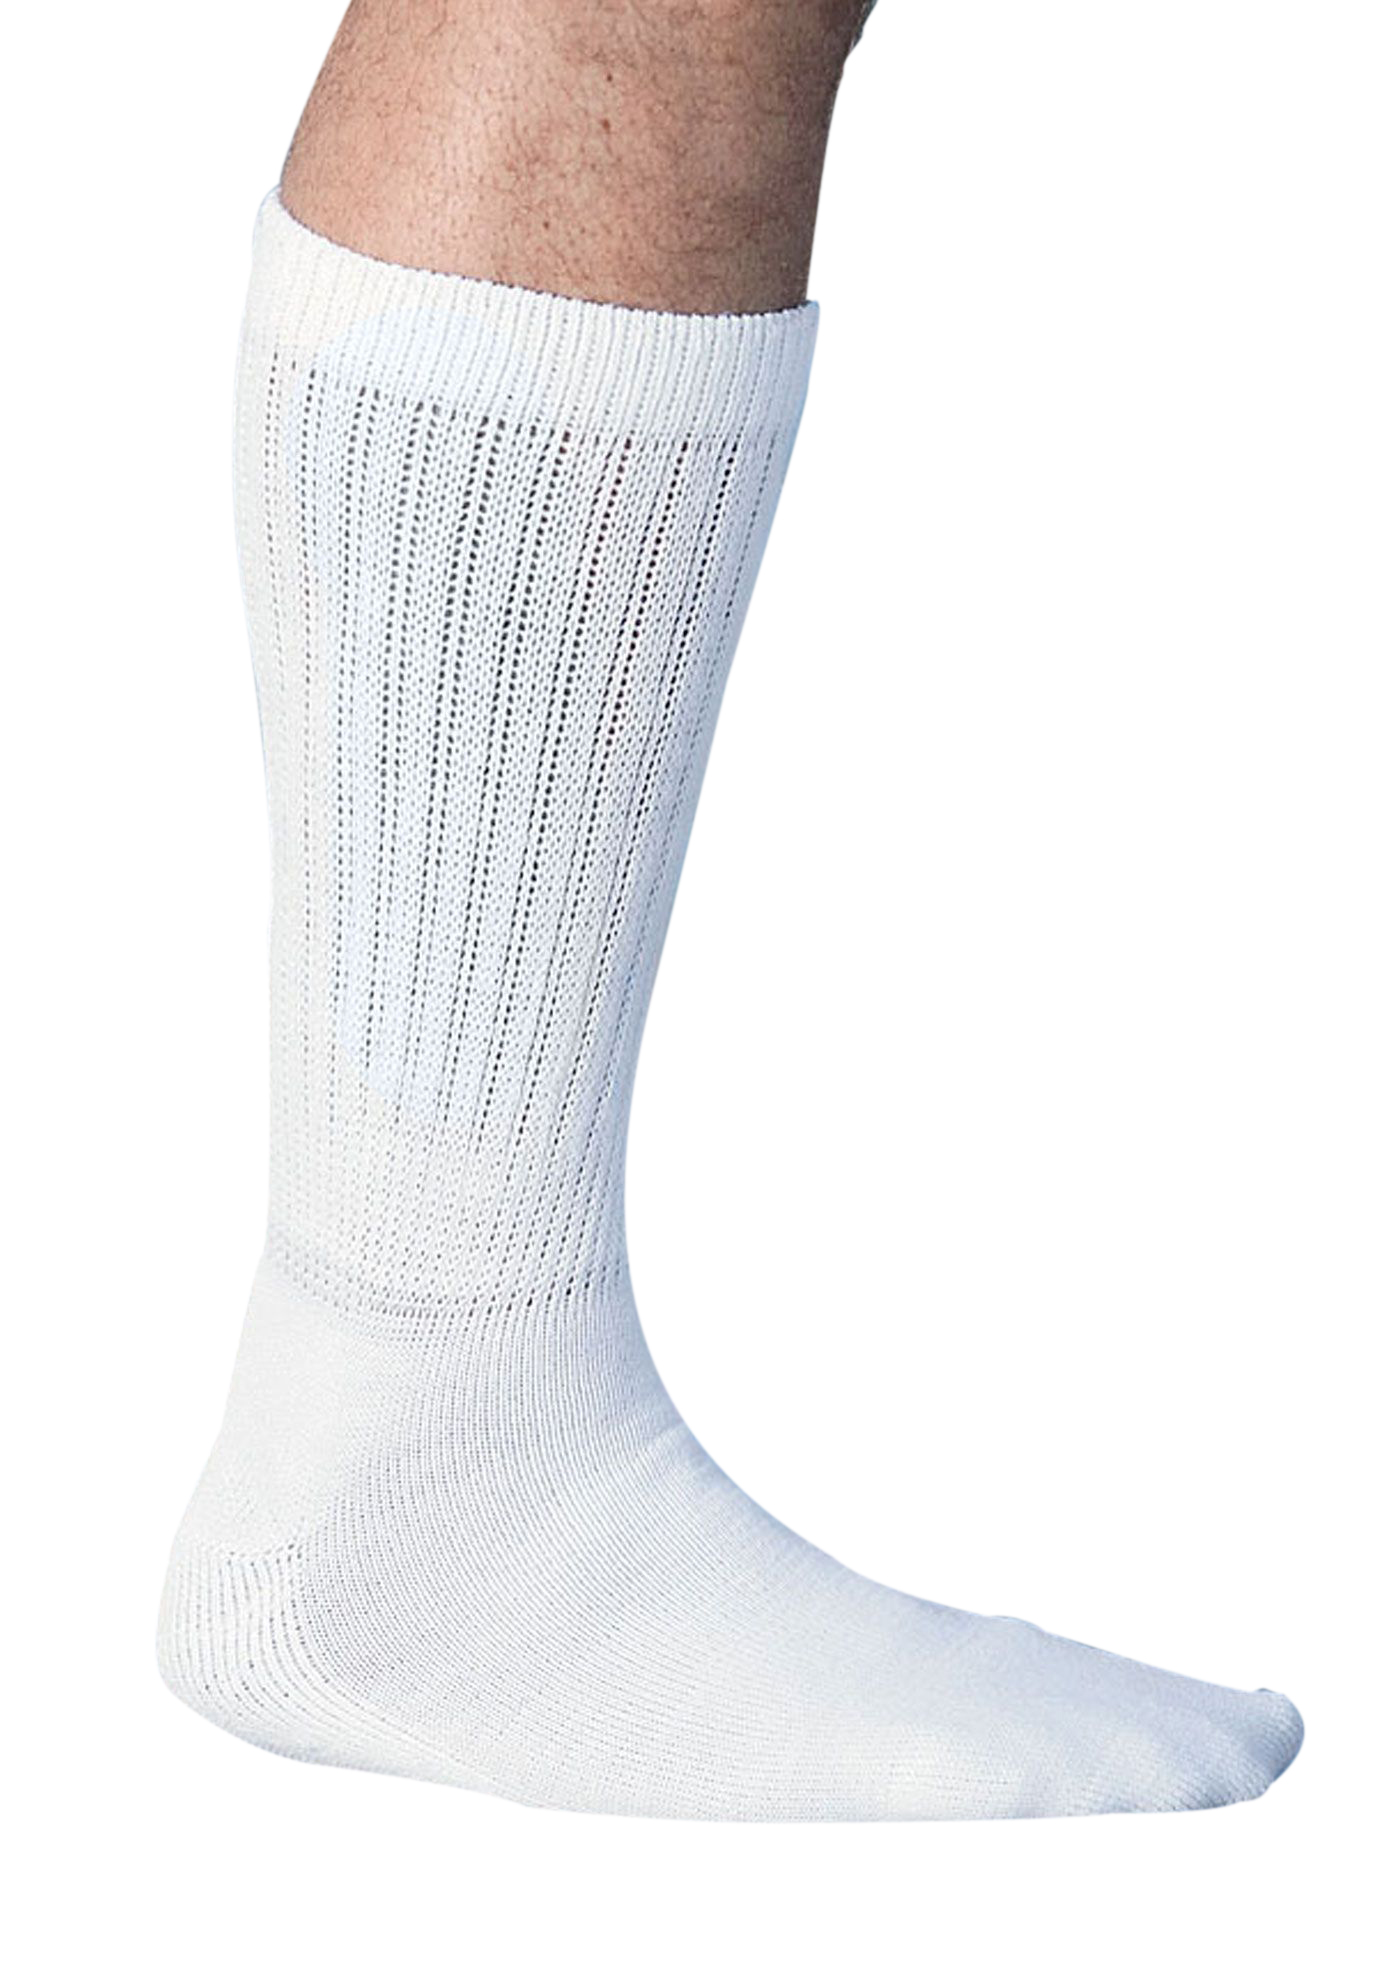 Mega Stretch Socks,